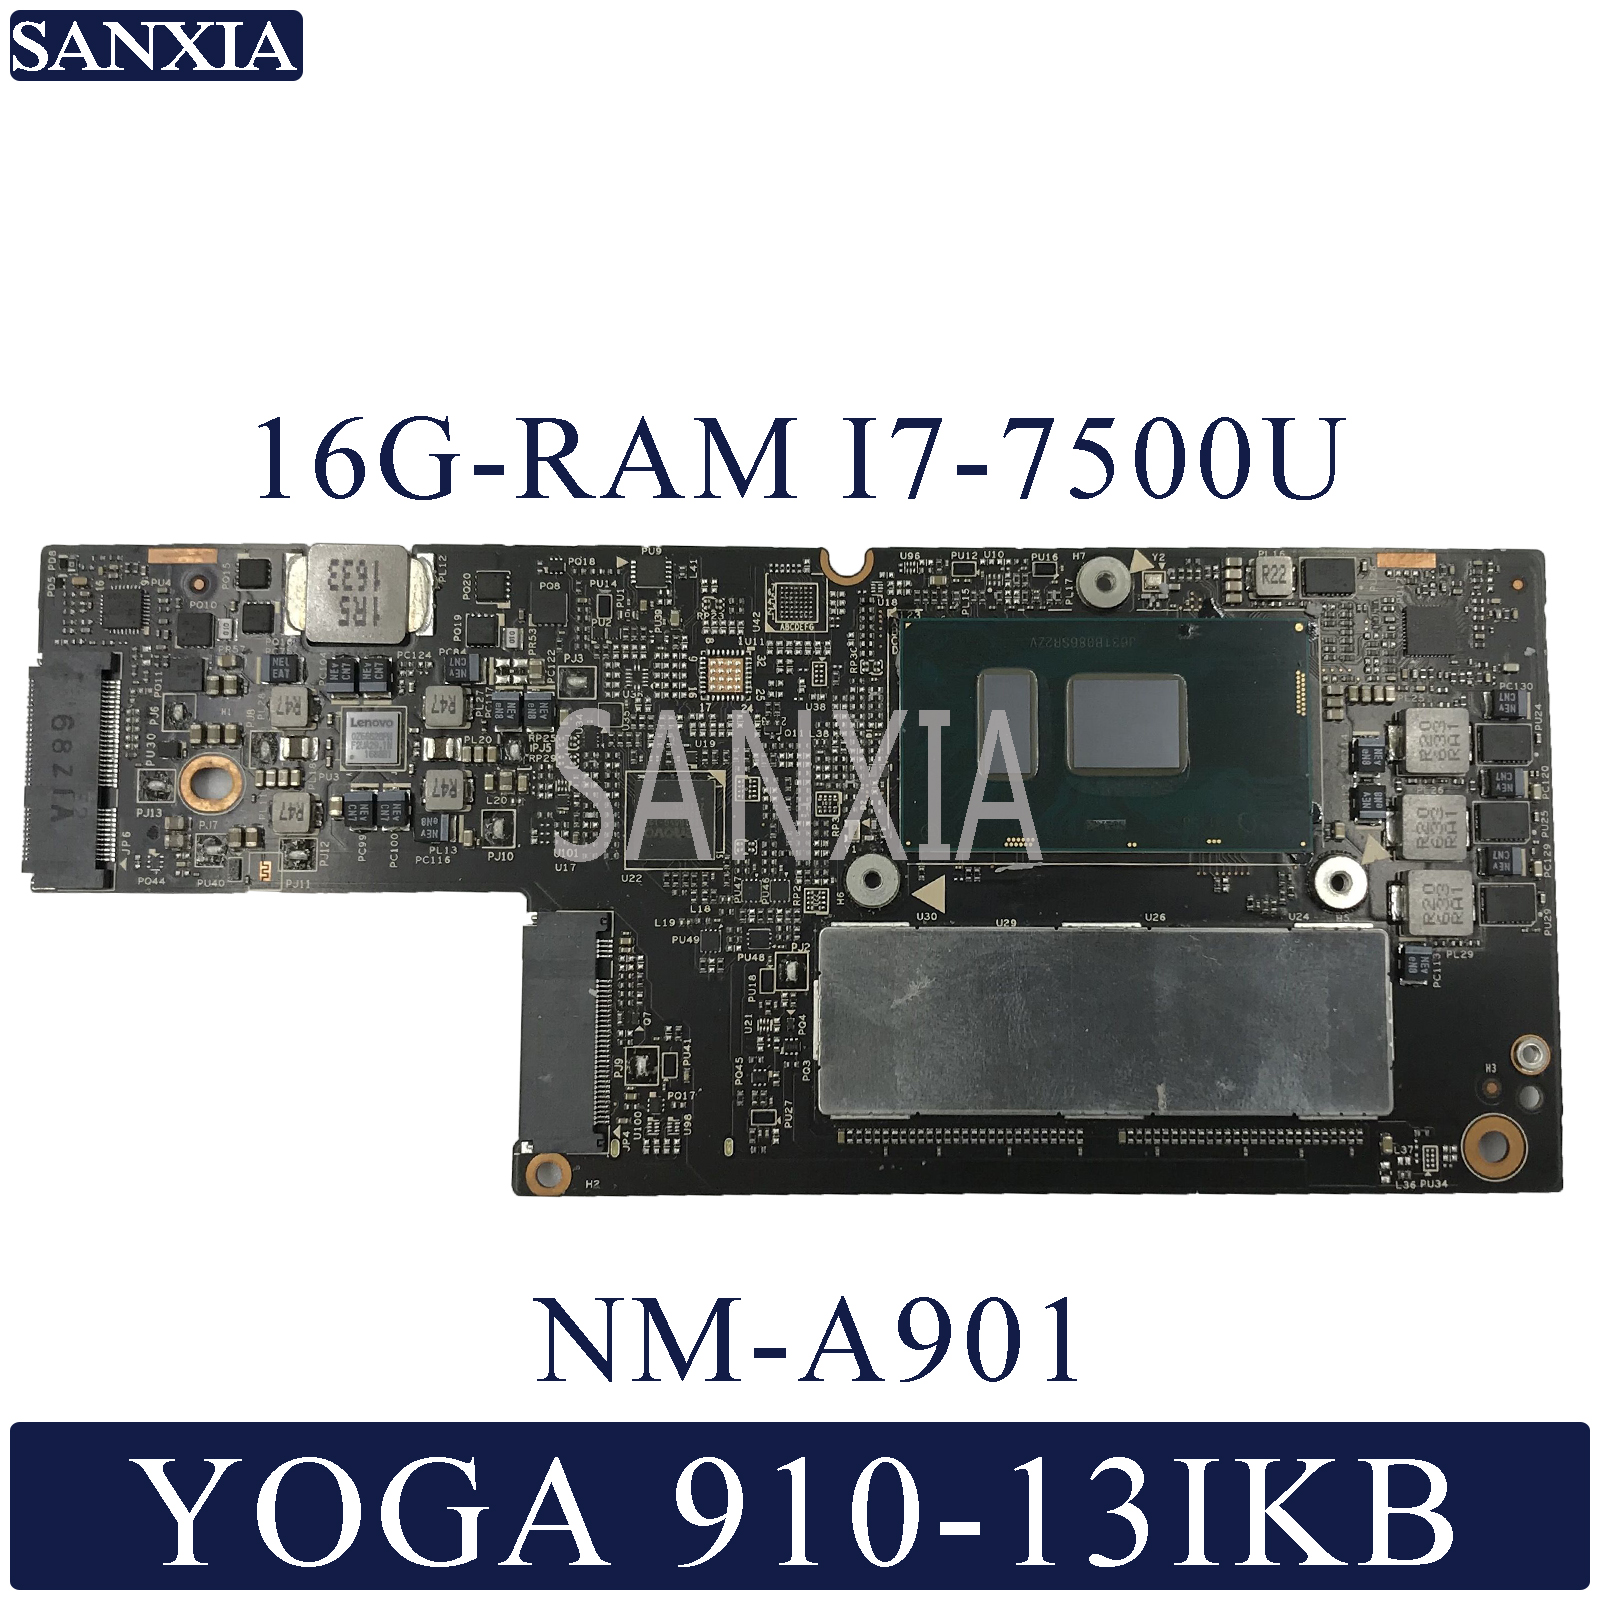 KEFU NM-A901 Laptop Motherboard For Lenovo YOGA 5 Pro 910-13IKB Original Mainboard 16G-RAM I7-7500U